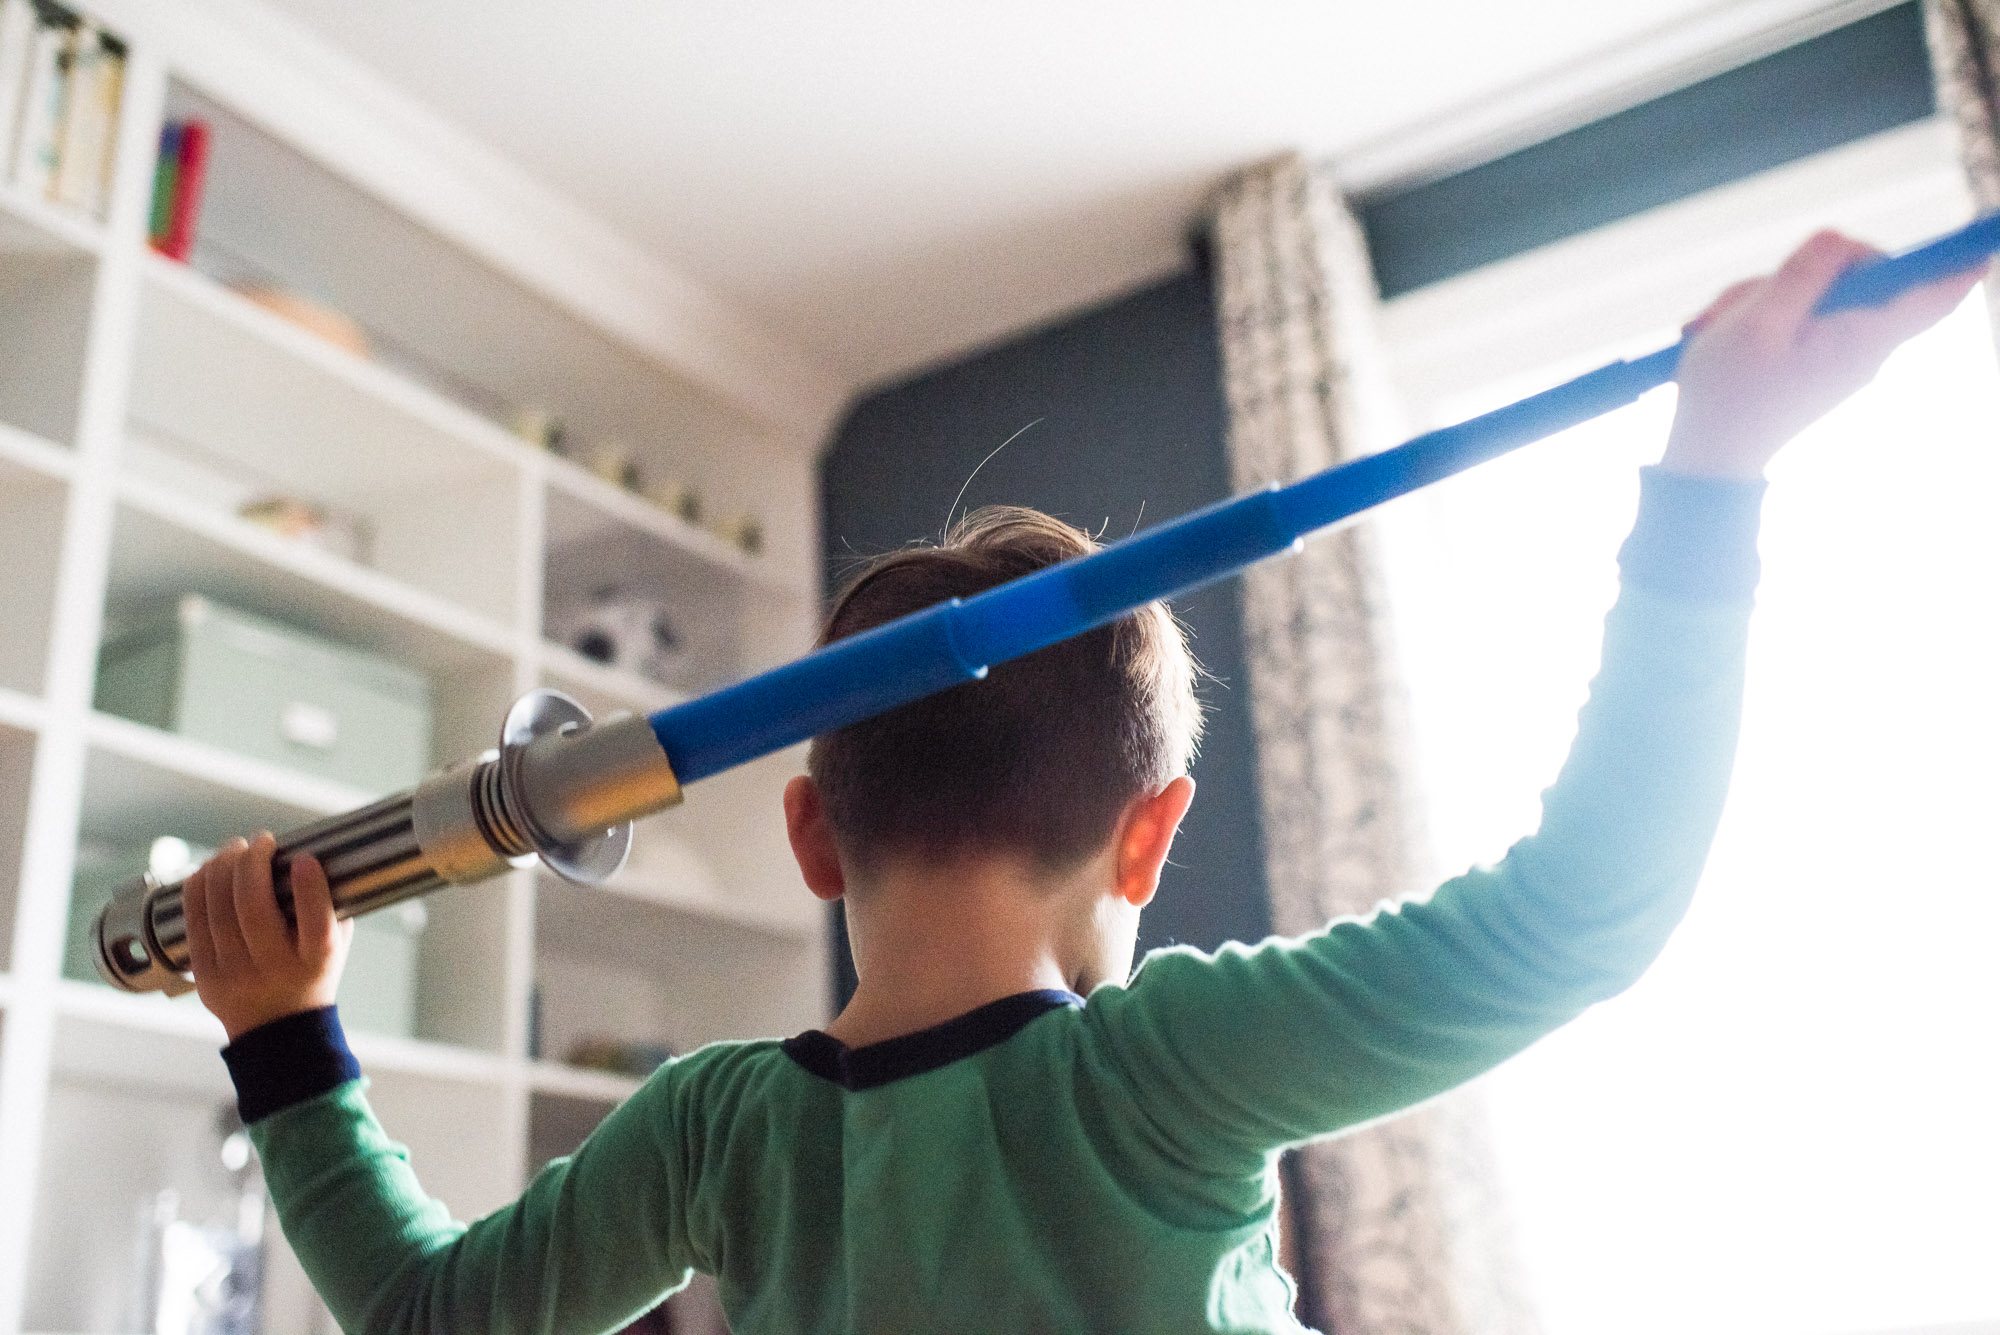 boy holds lightsaber behind his head in front of window